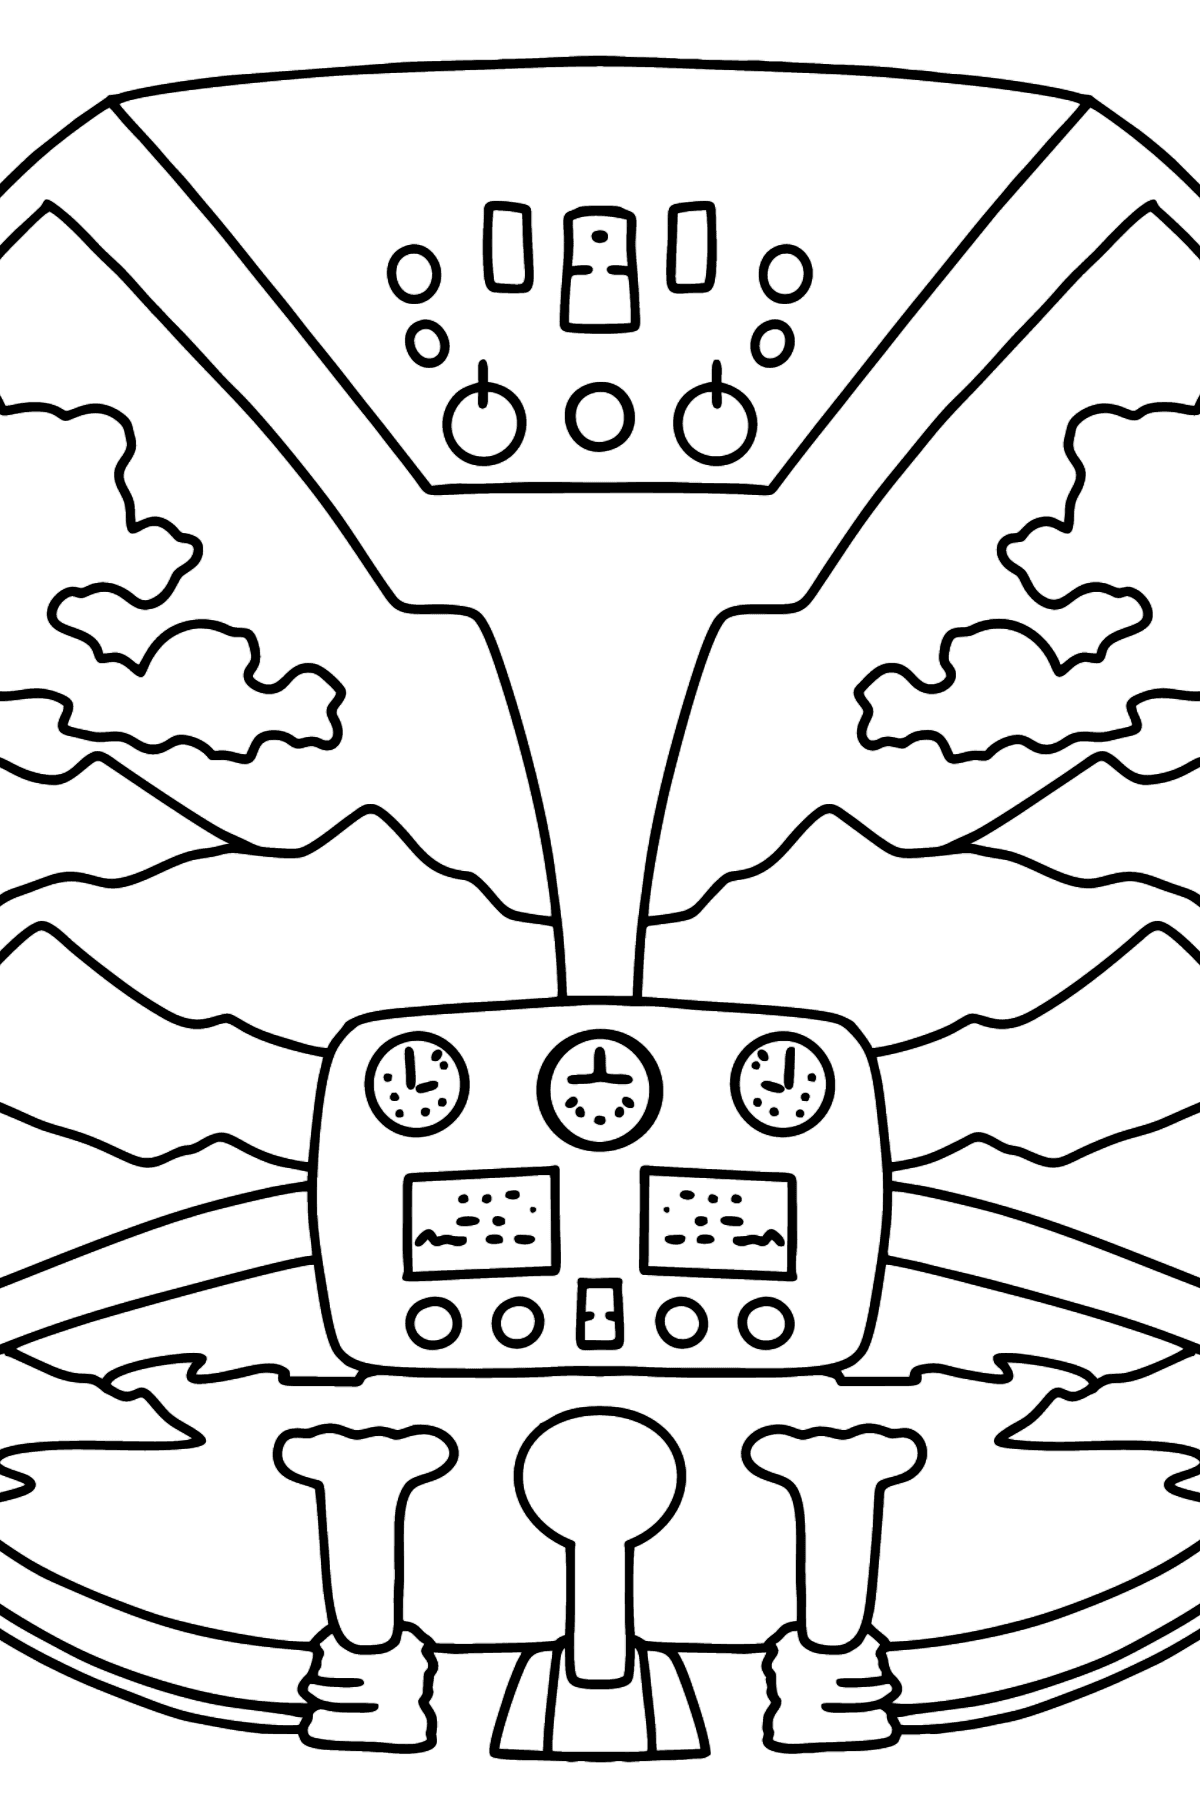 Helicopter Wheel coloring page - Coloring Pages for Kids